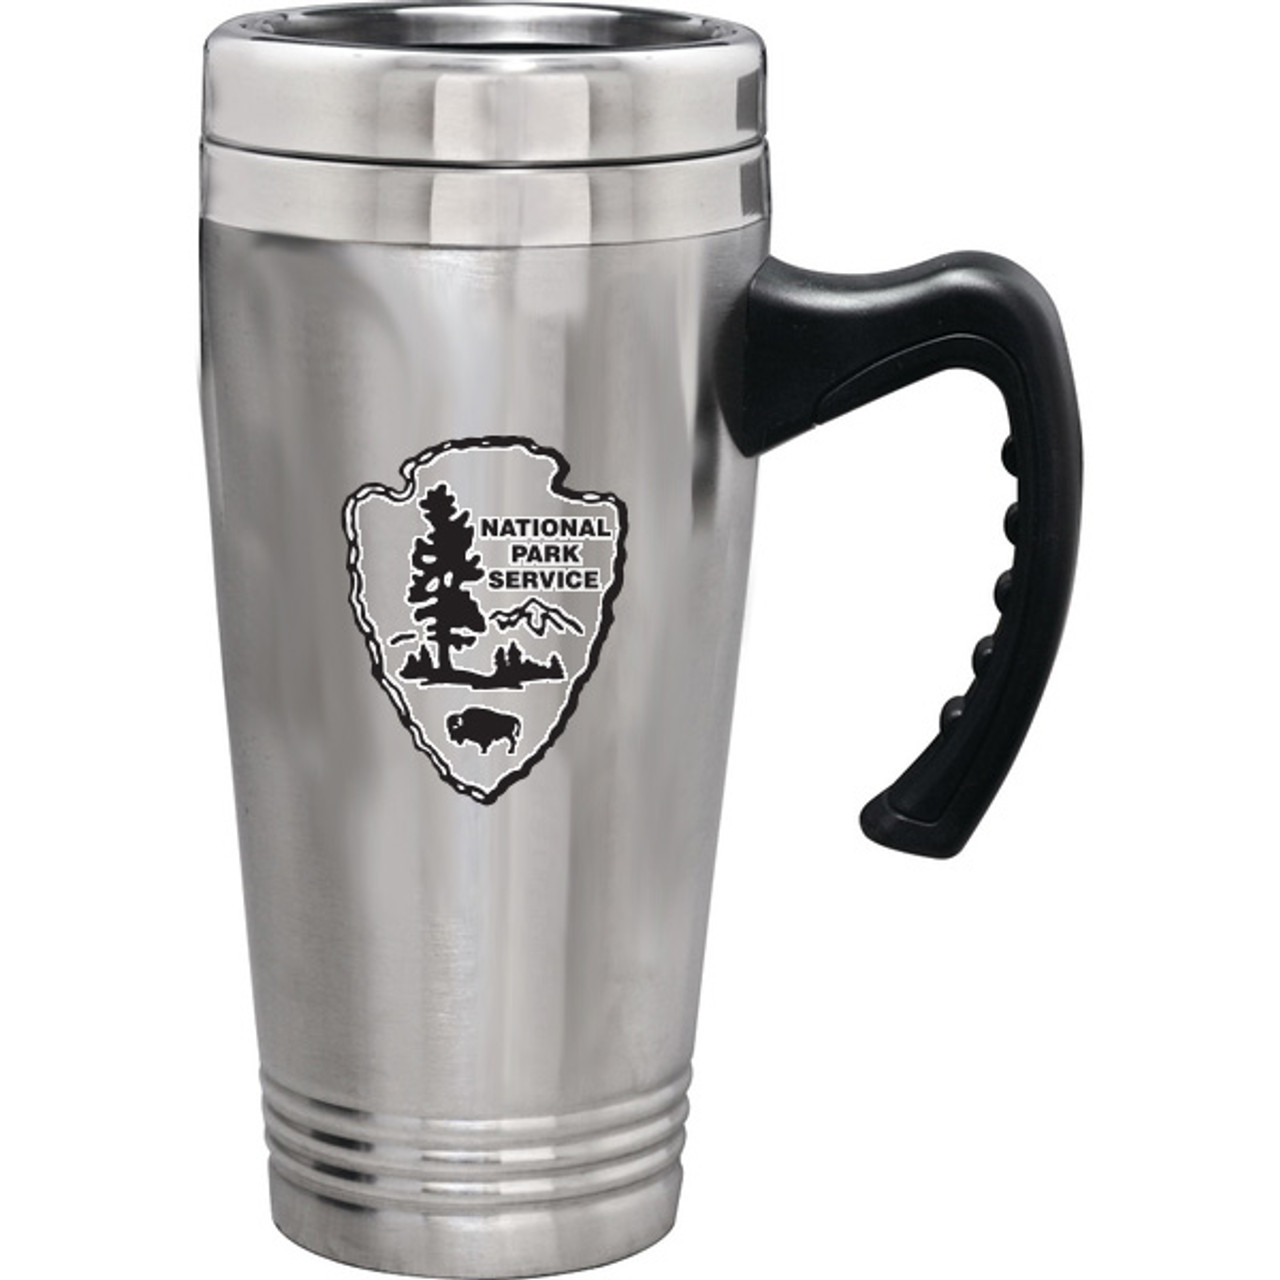 Stainless Steel Travel Mug - National Park Service (Discontinued)